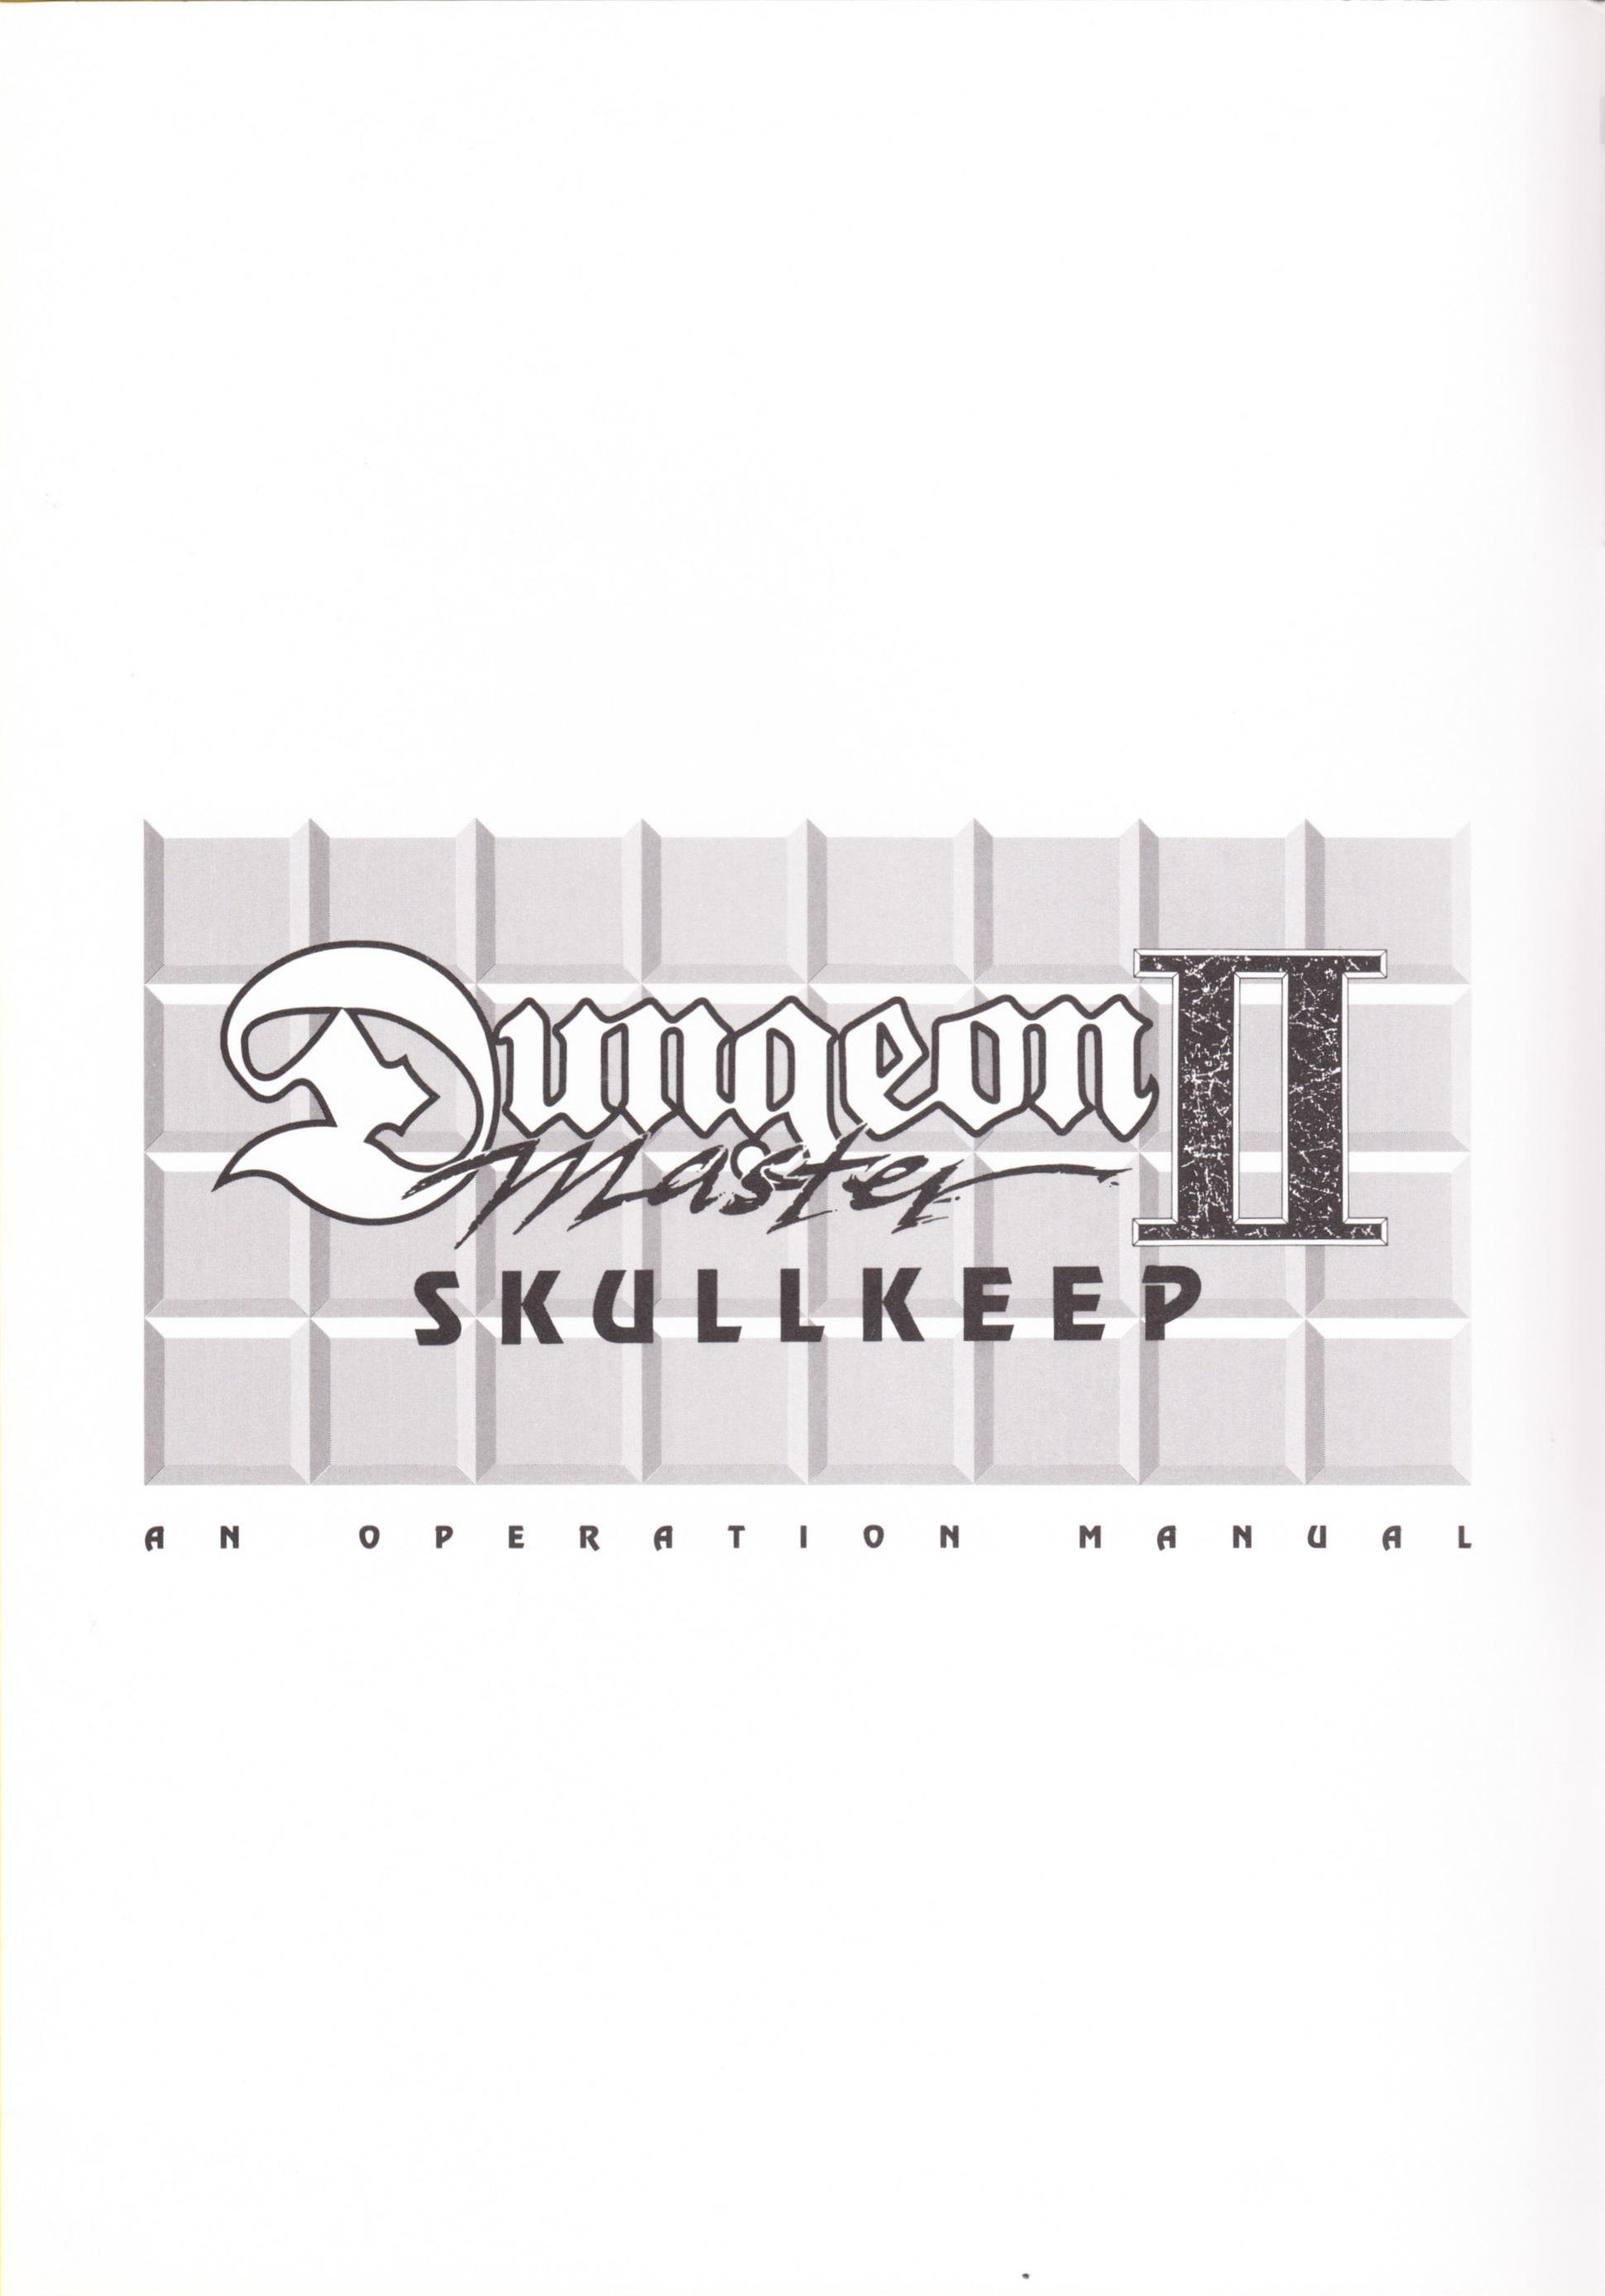 Game - Dungeon Master II - JP - PC-9801 - 3.5-inch - An Operation Manual - Page 002 - Scan